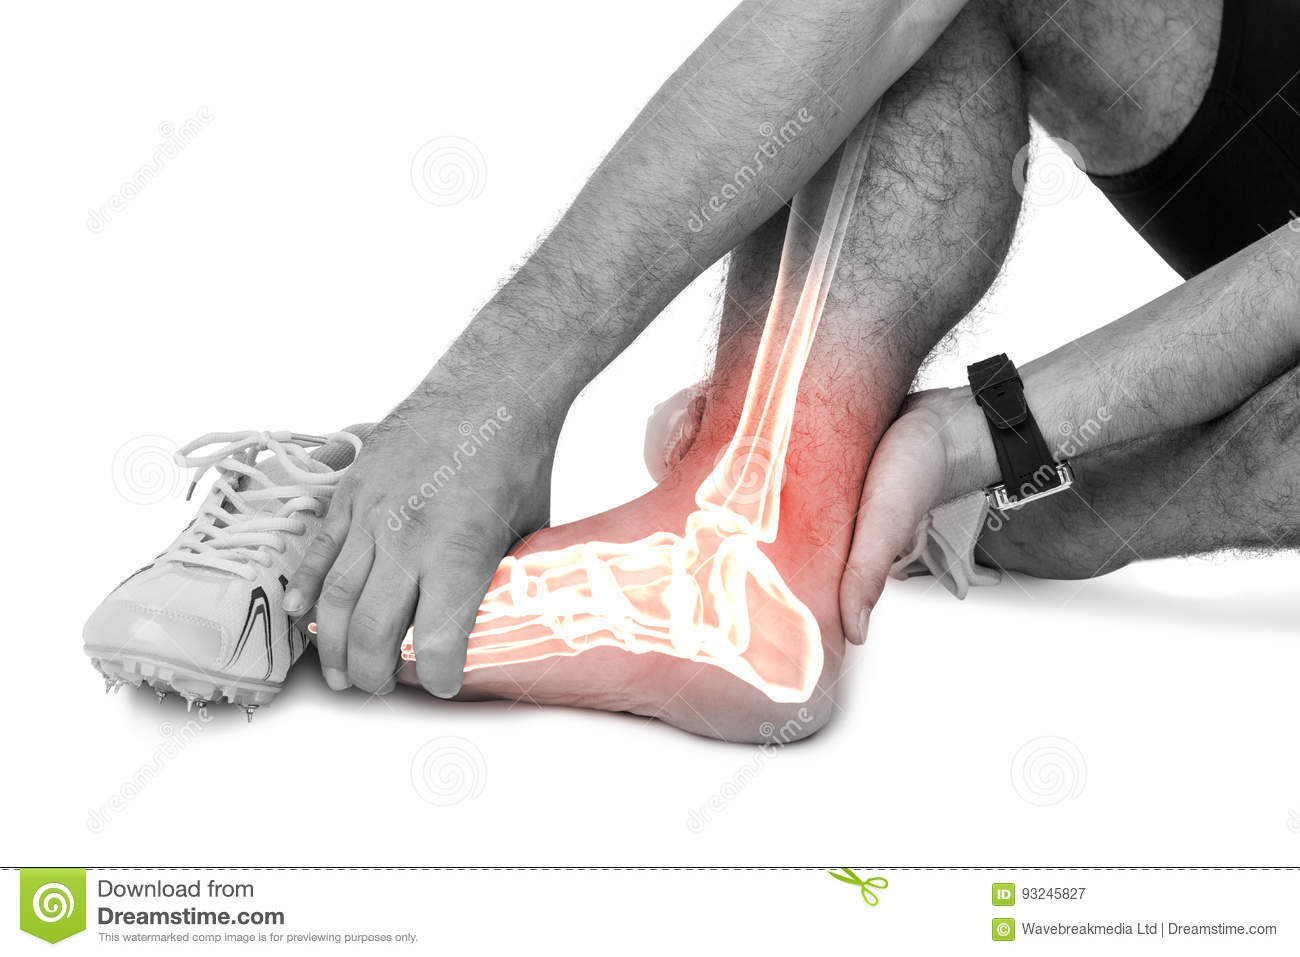 Highlighted leg bones of injured man against white background